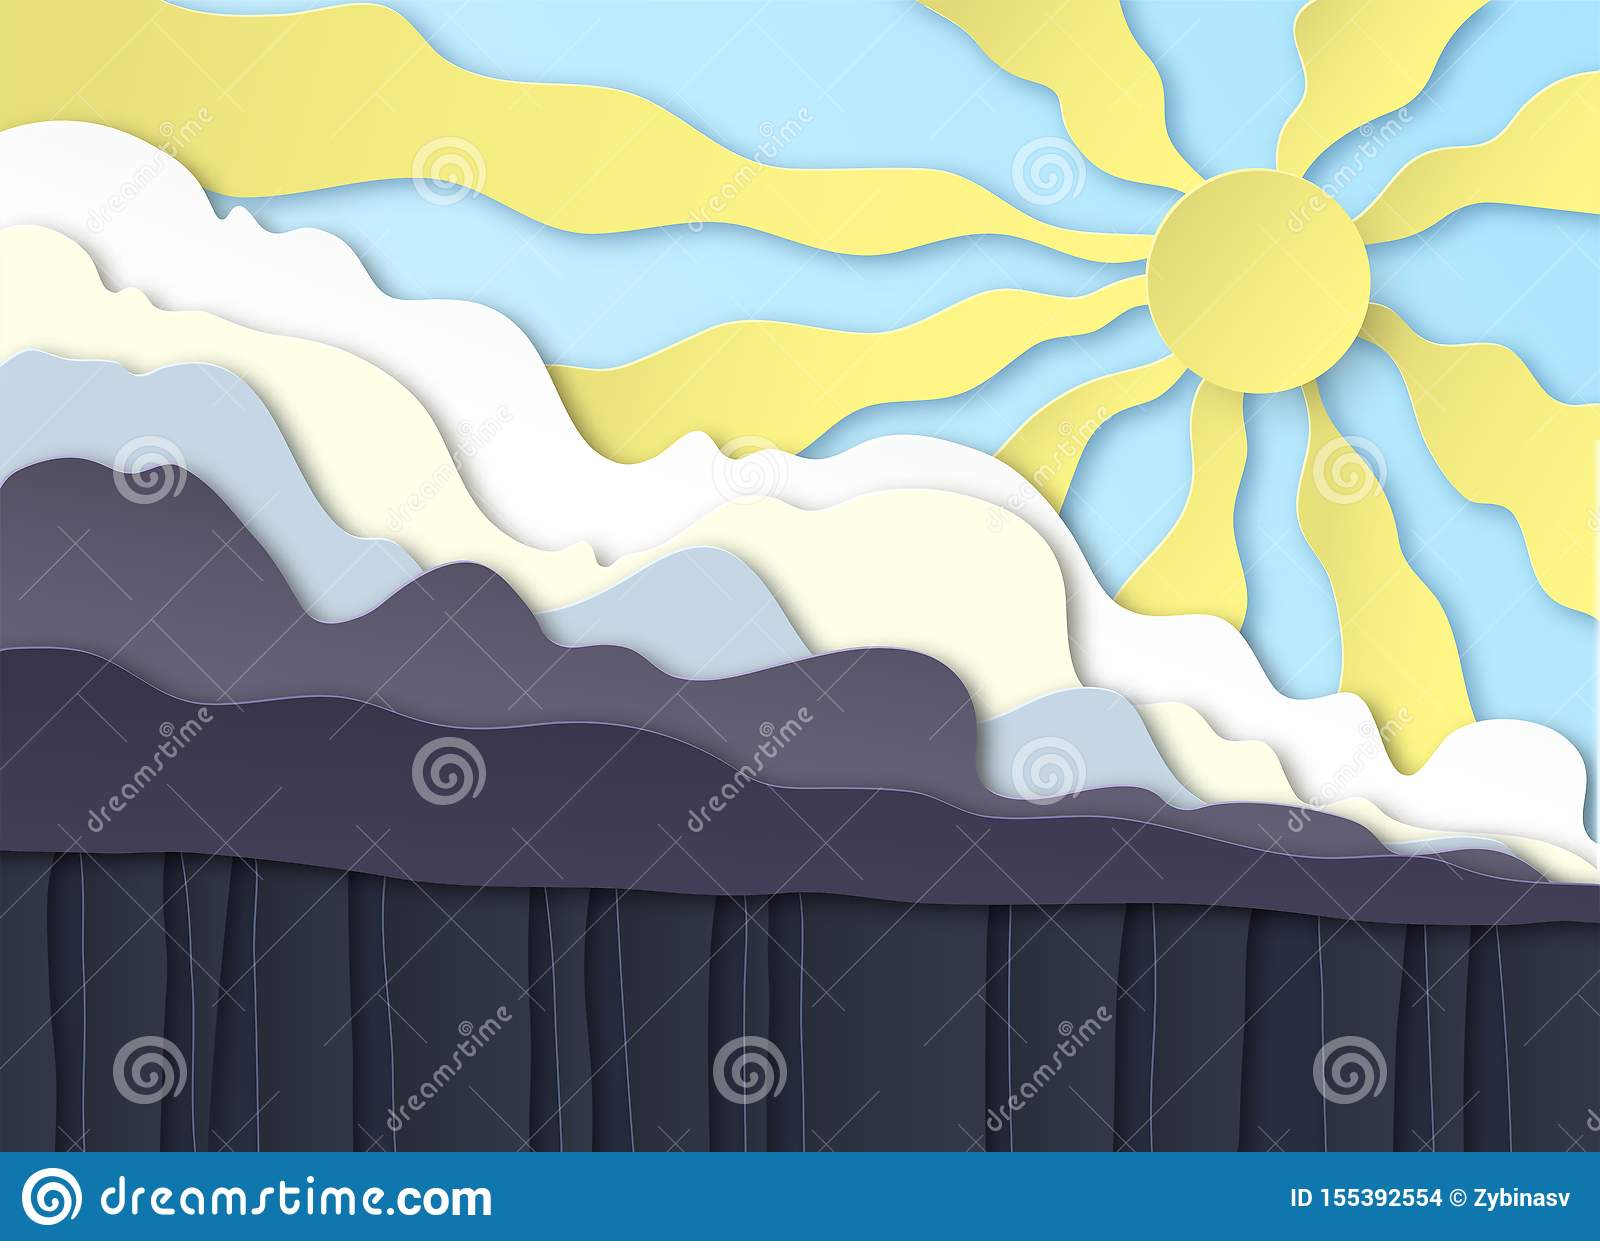 Thunderclouds. Rain on the ground, downpour. Above the clouds the sun shines in the blue sky. Layered design. Peper cut